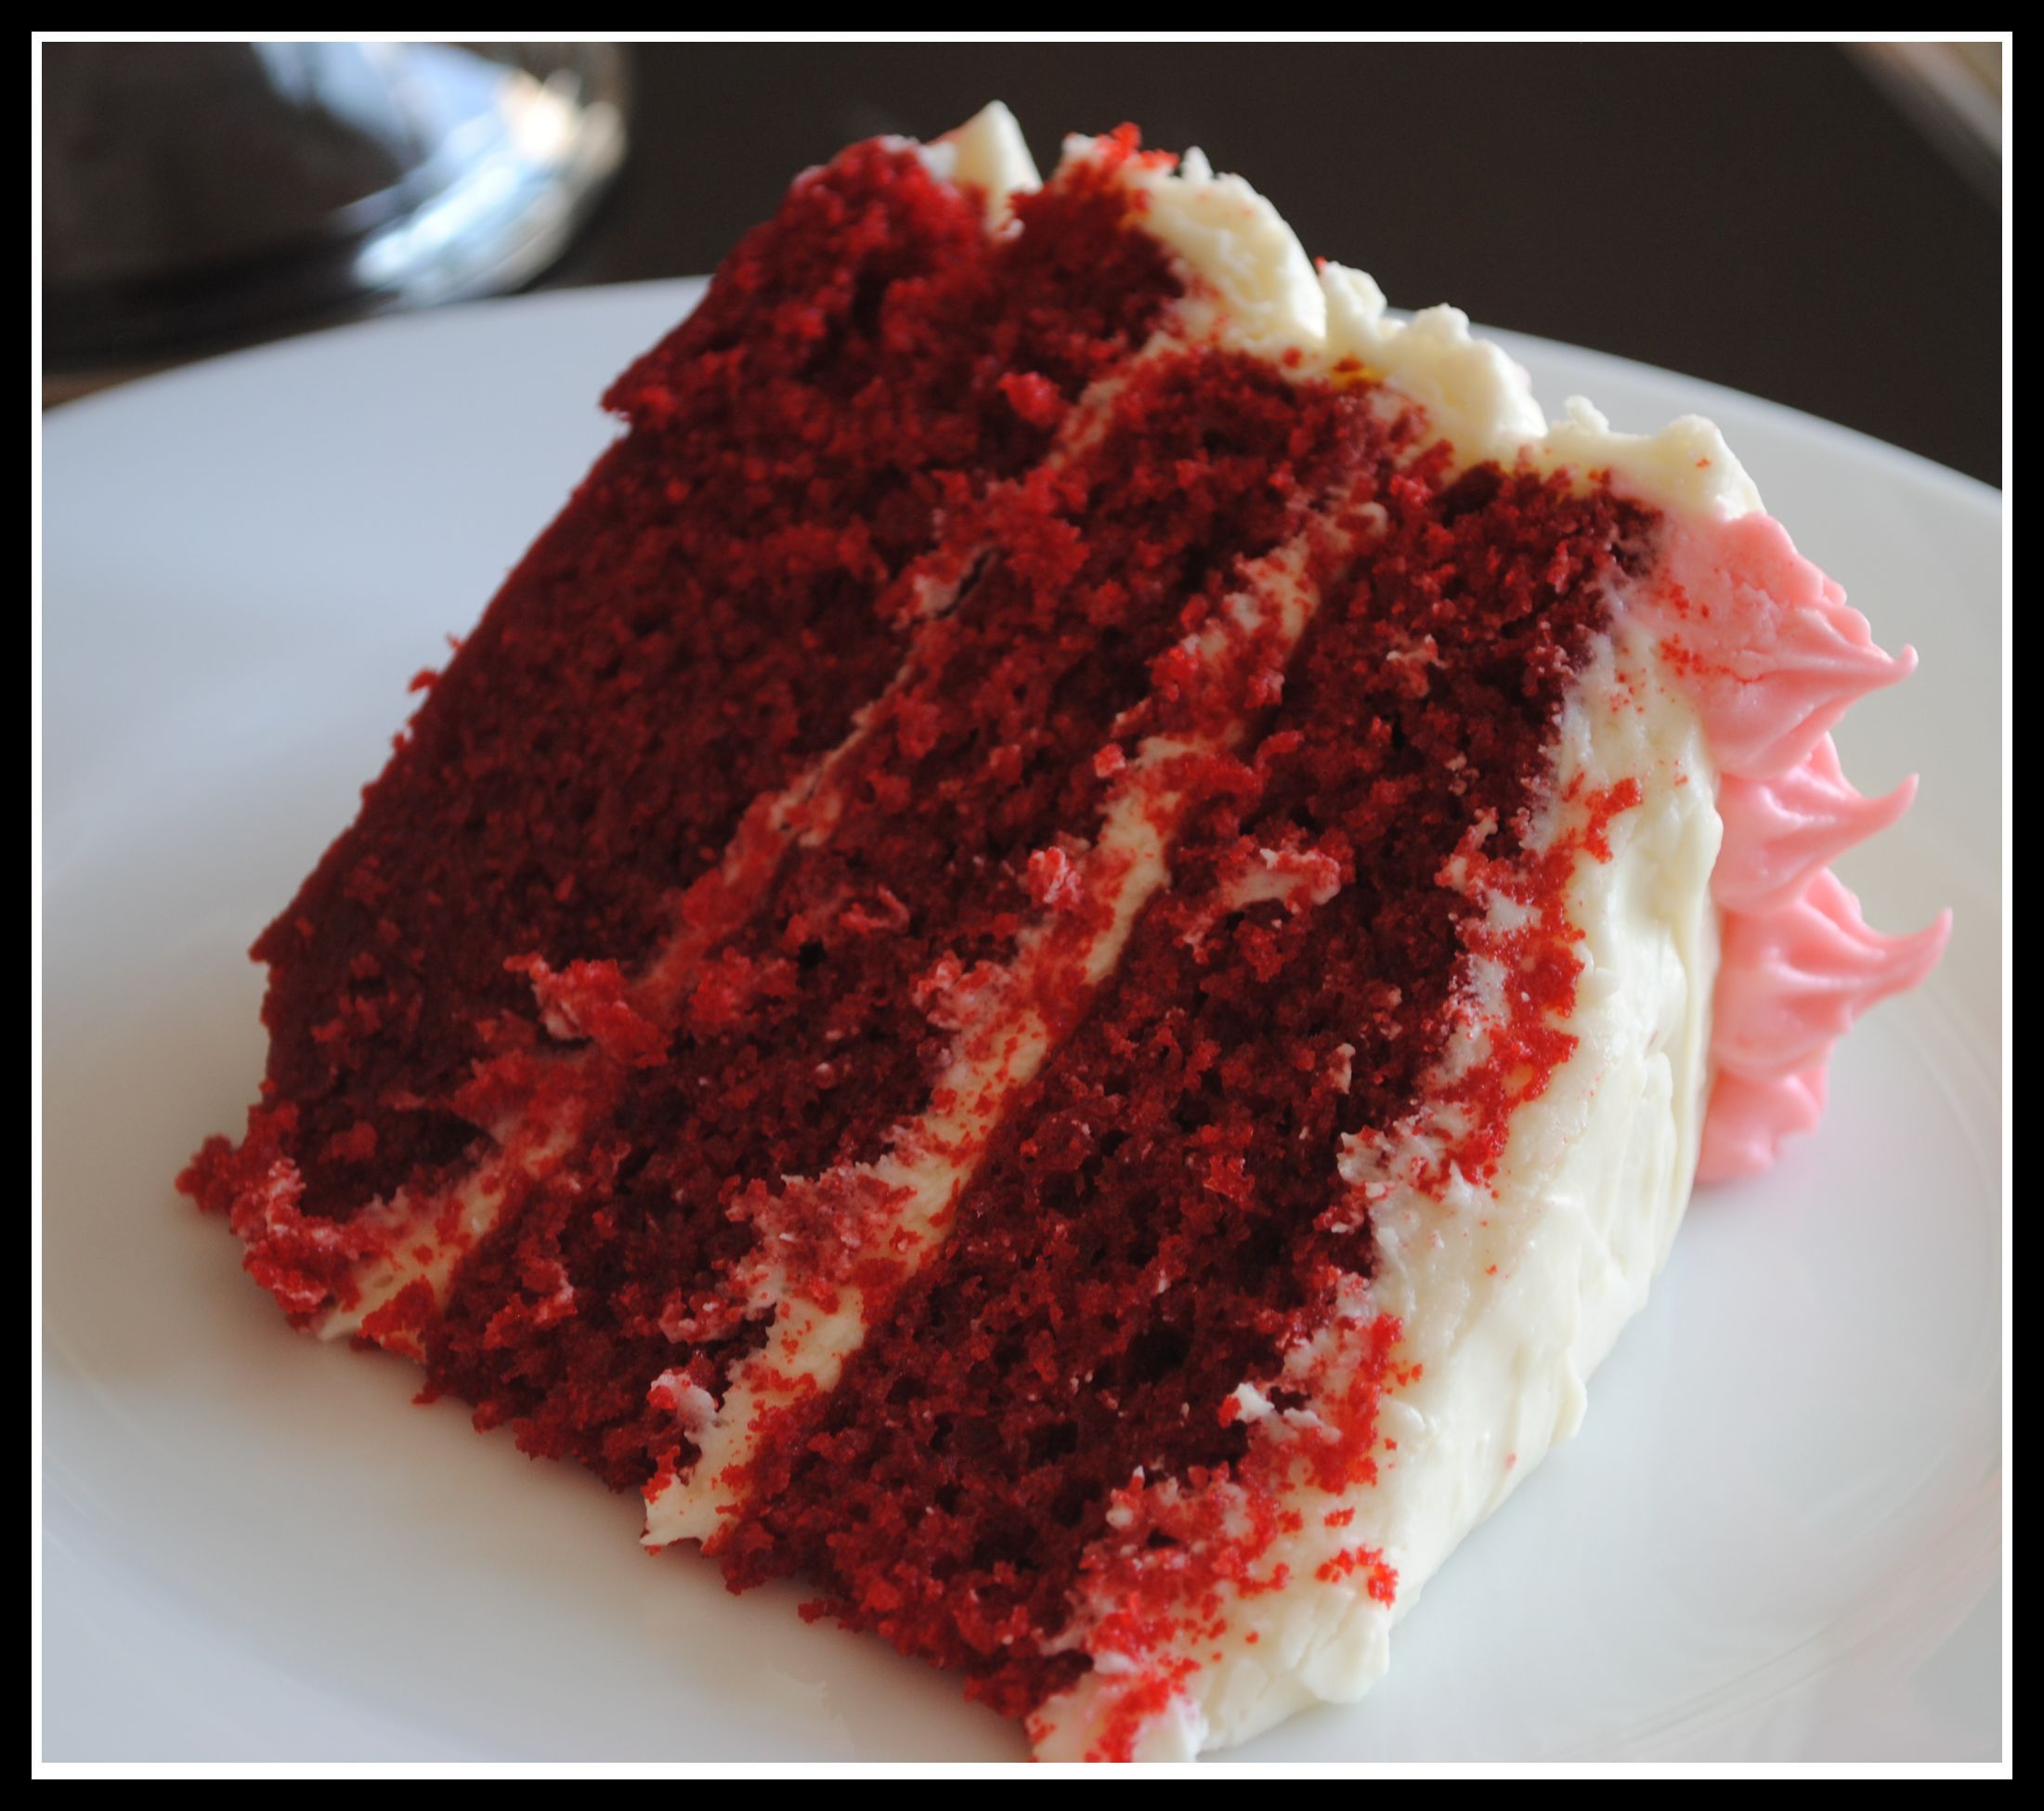 Red Velvet Cake With Cream Cheese Frosting By Preventionrd